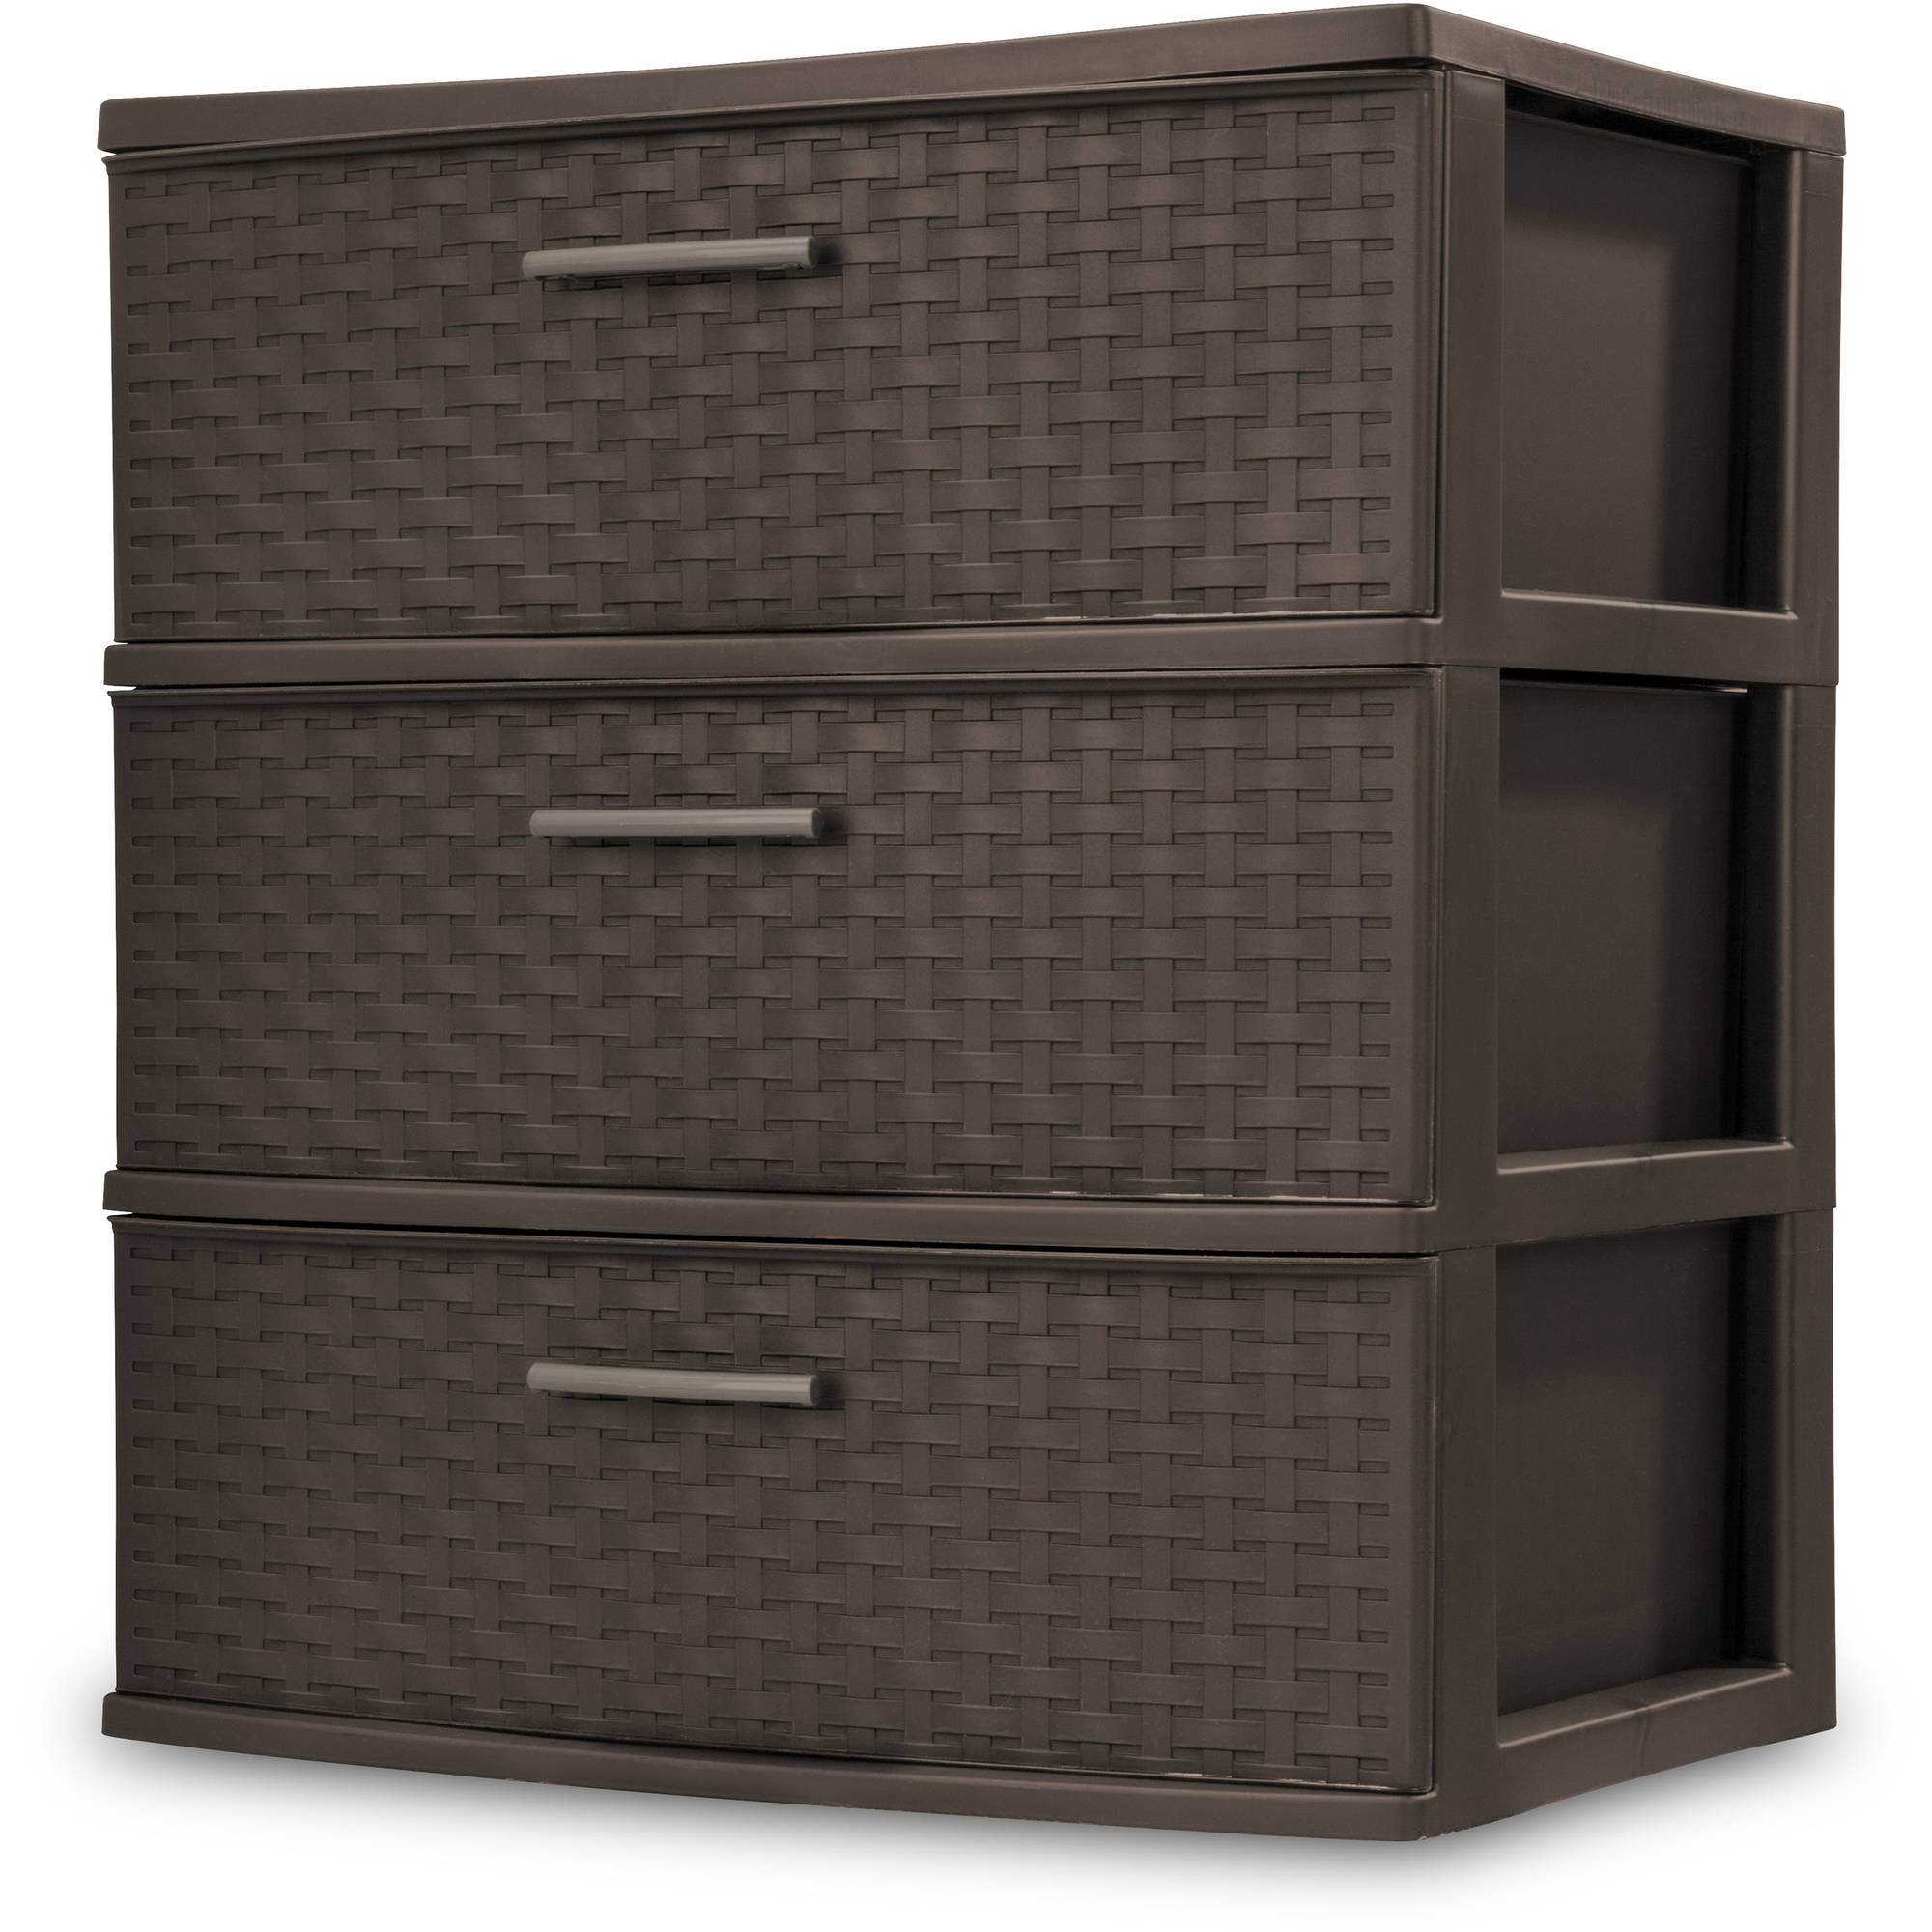 Sterilite 3-Drawer Wide Weave Tower, Espresso